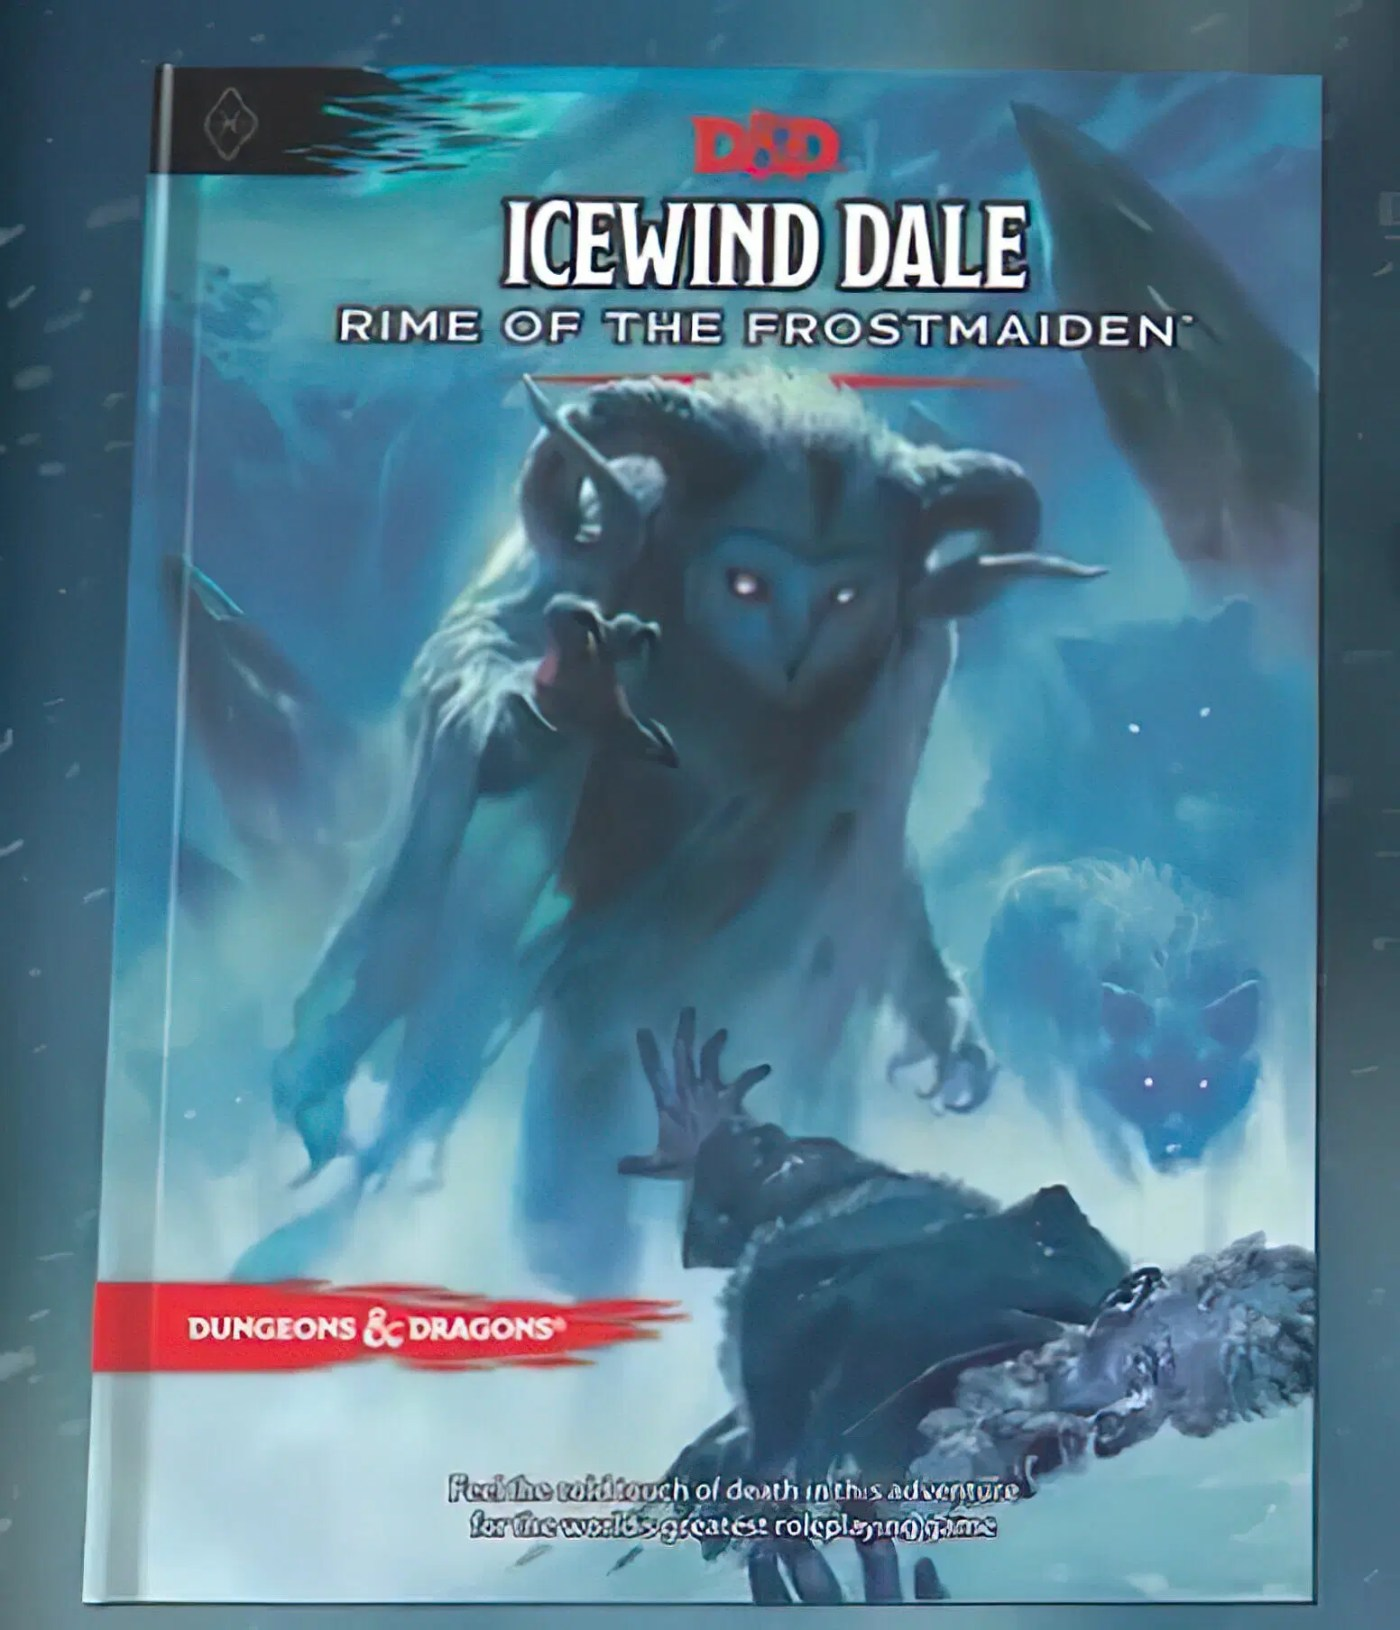 D&D leak: A closer look at Icewind Dale - Rime of the Frostmaiden